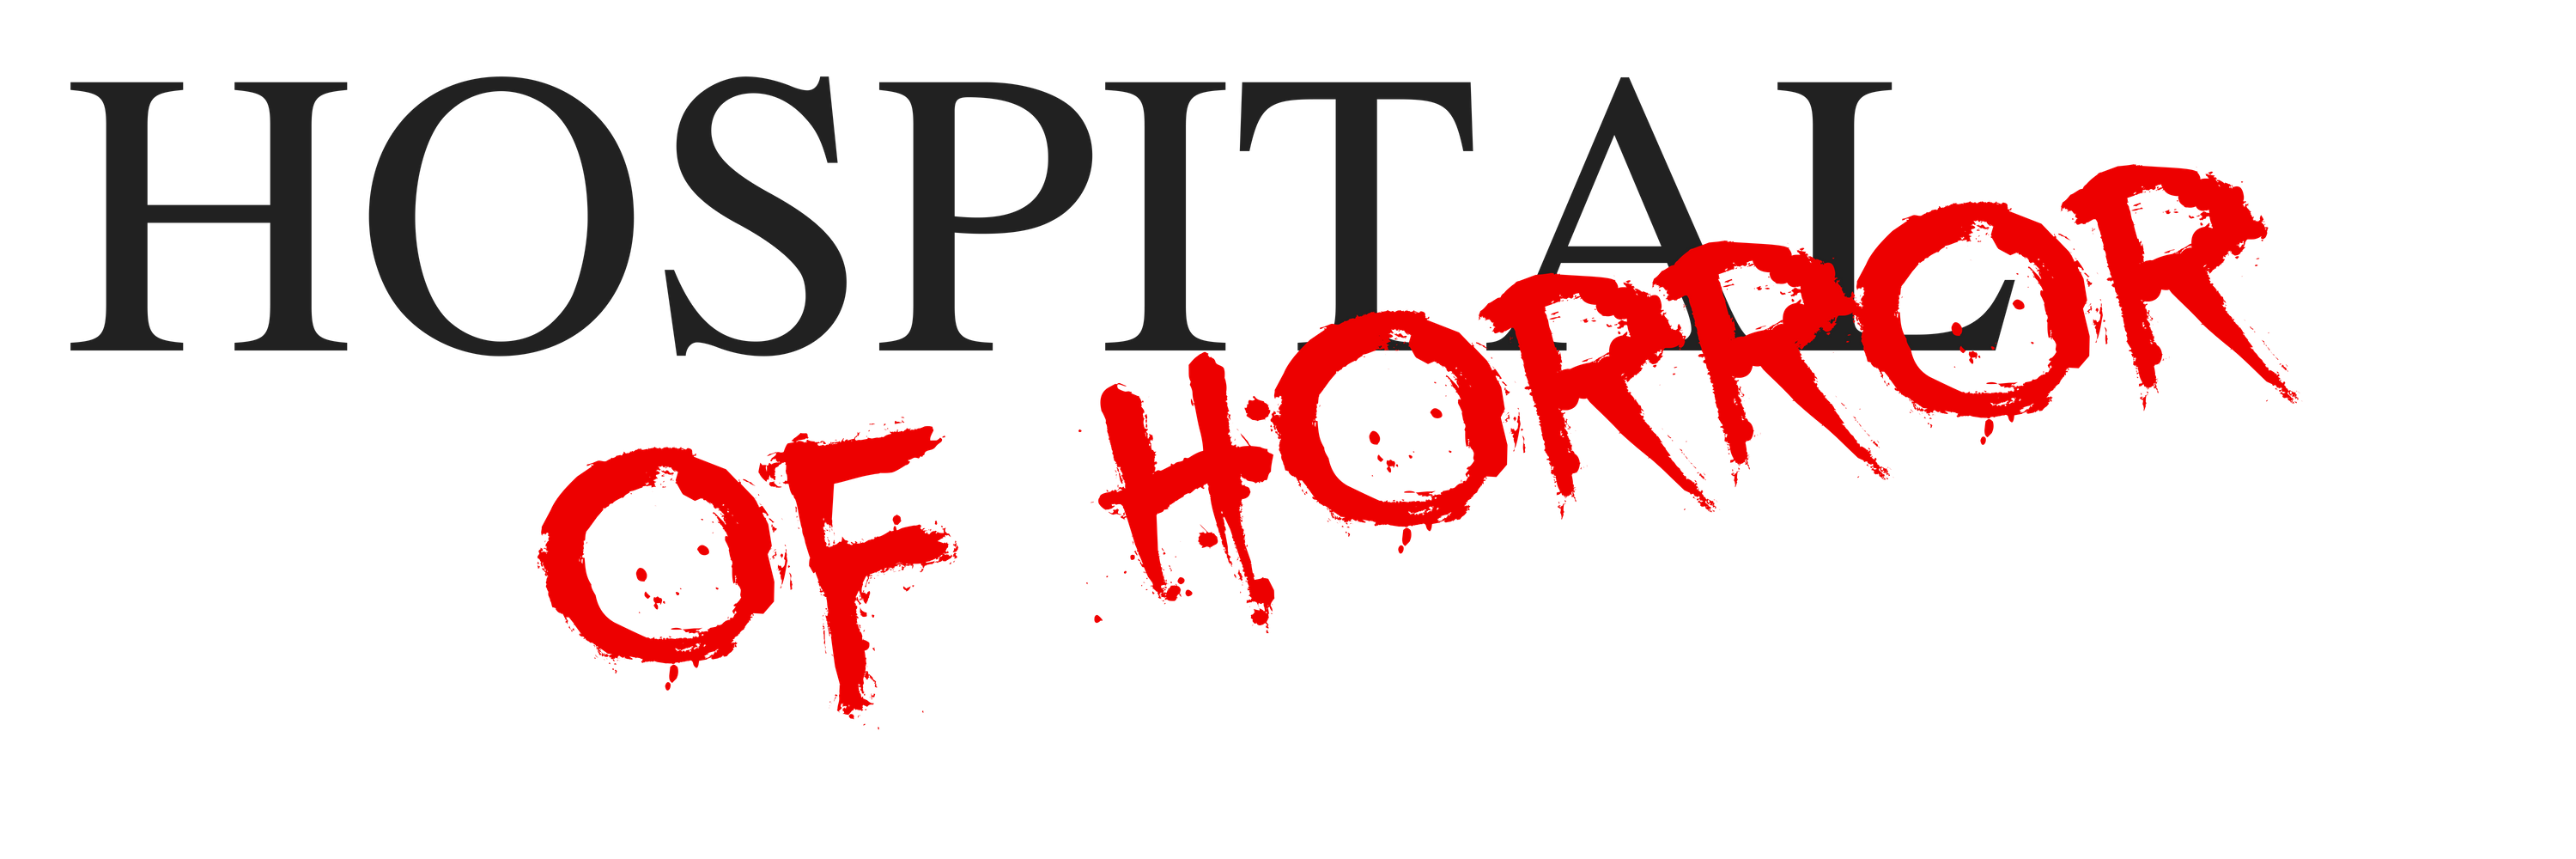 Hospital of Horror Logo - trans background